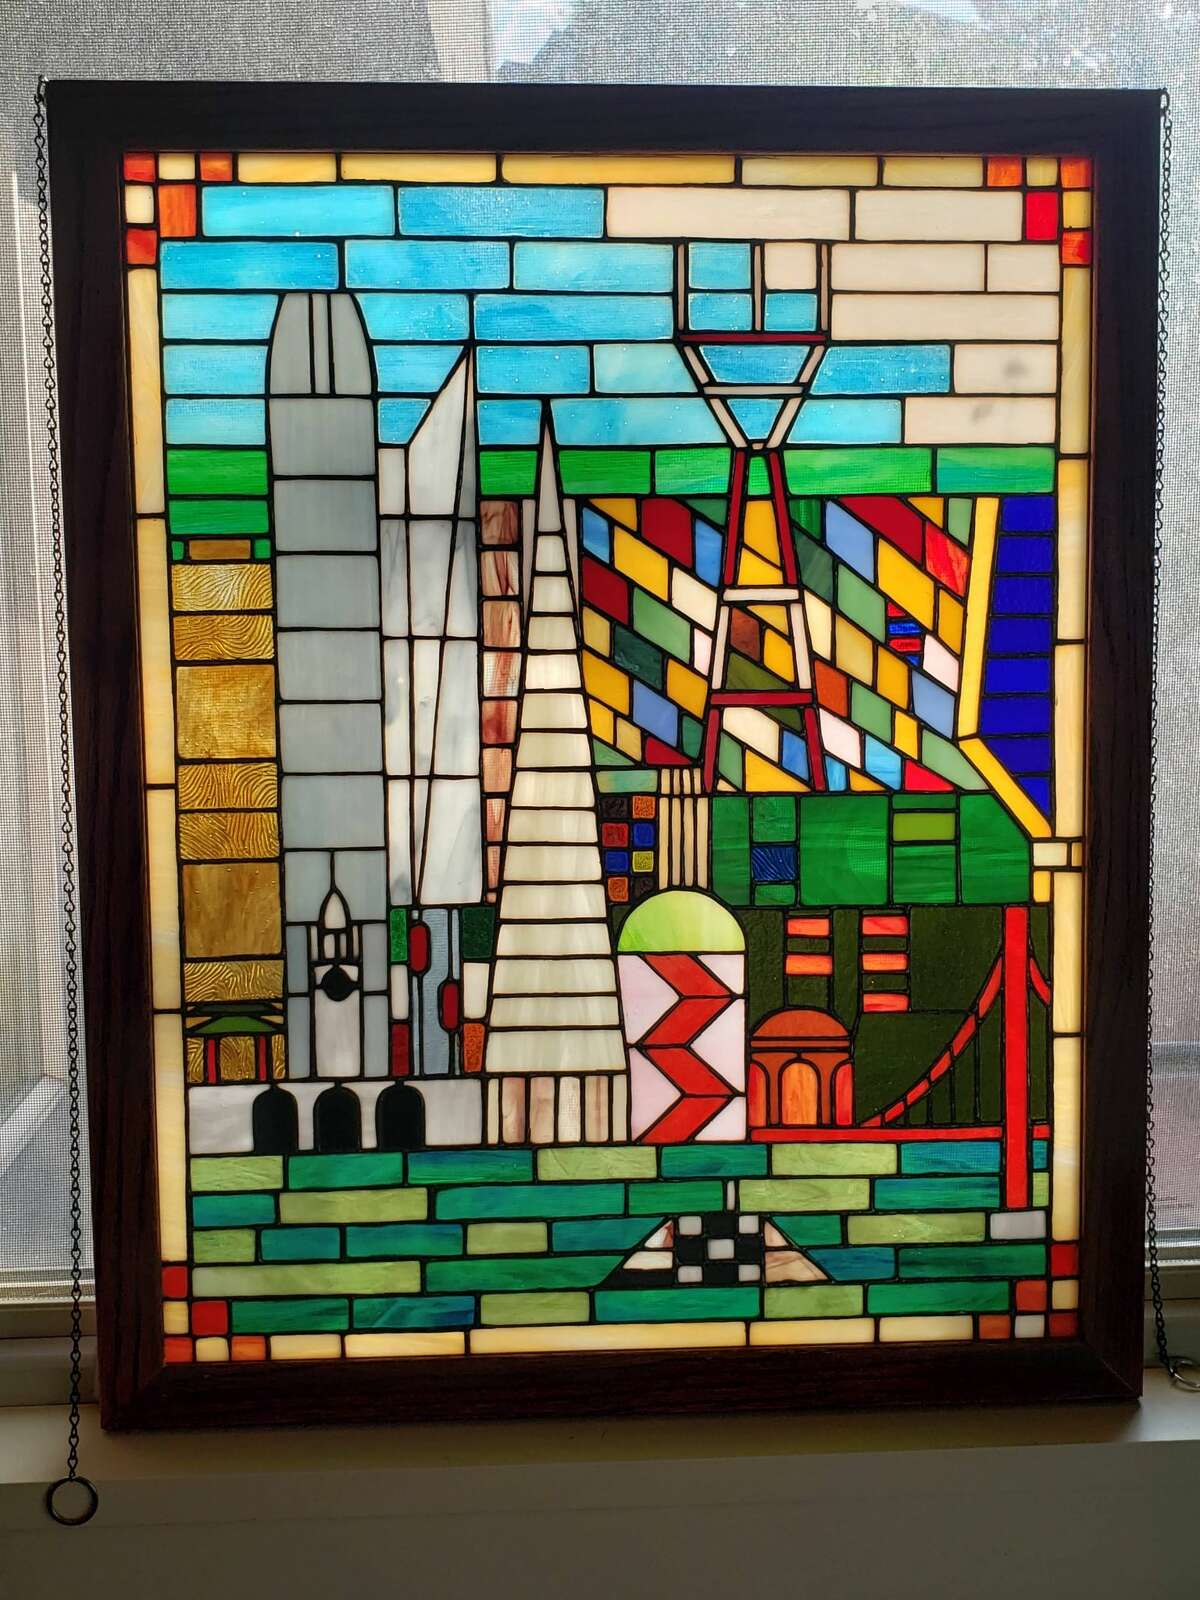 Stained glass created by artist Ryan Johnstone.